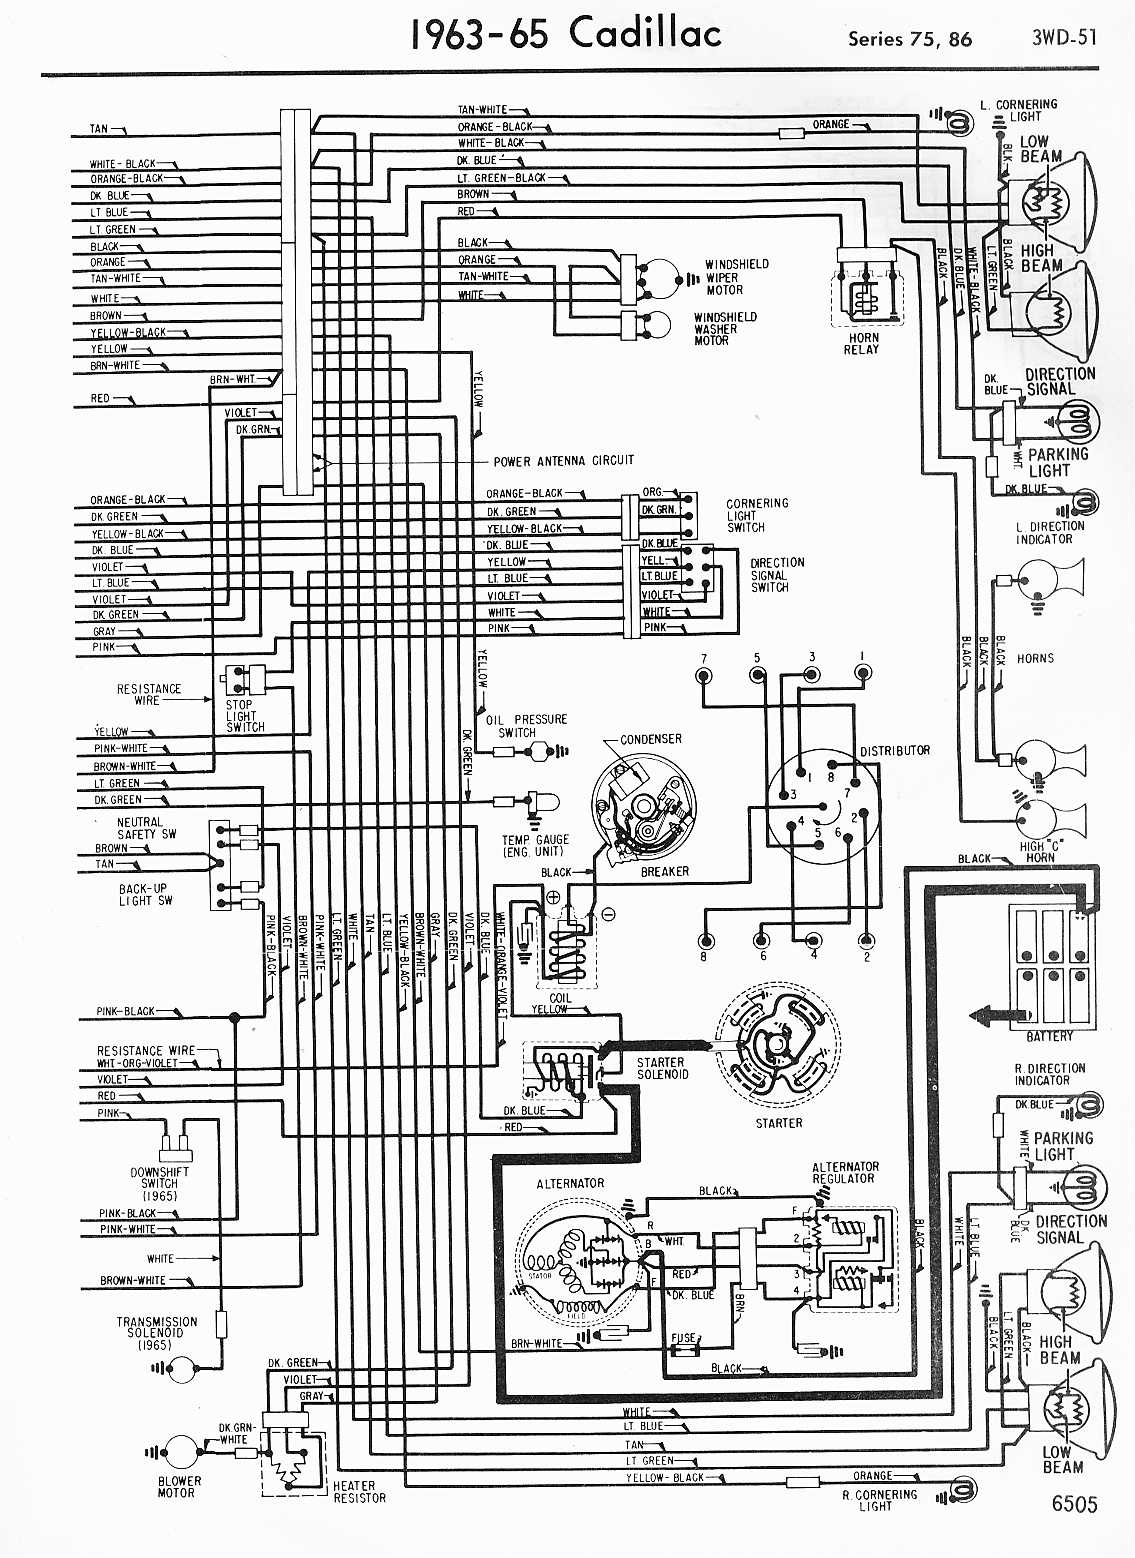 MWireCadi65_3WD 051 cadillac wiring diagrams 1957 1965 1996 cadillac deville wiring schematics at crackthecode.co